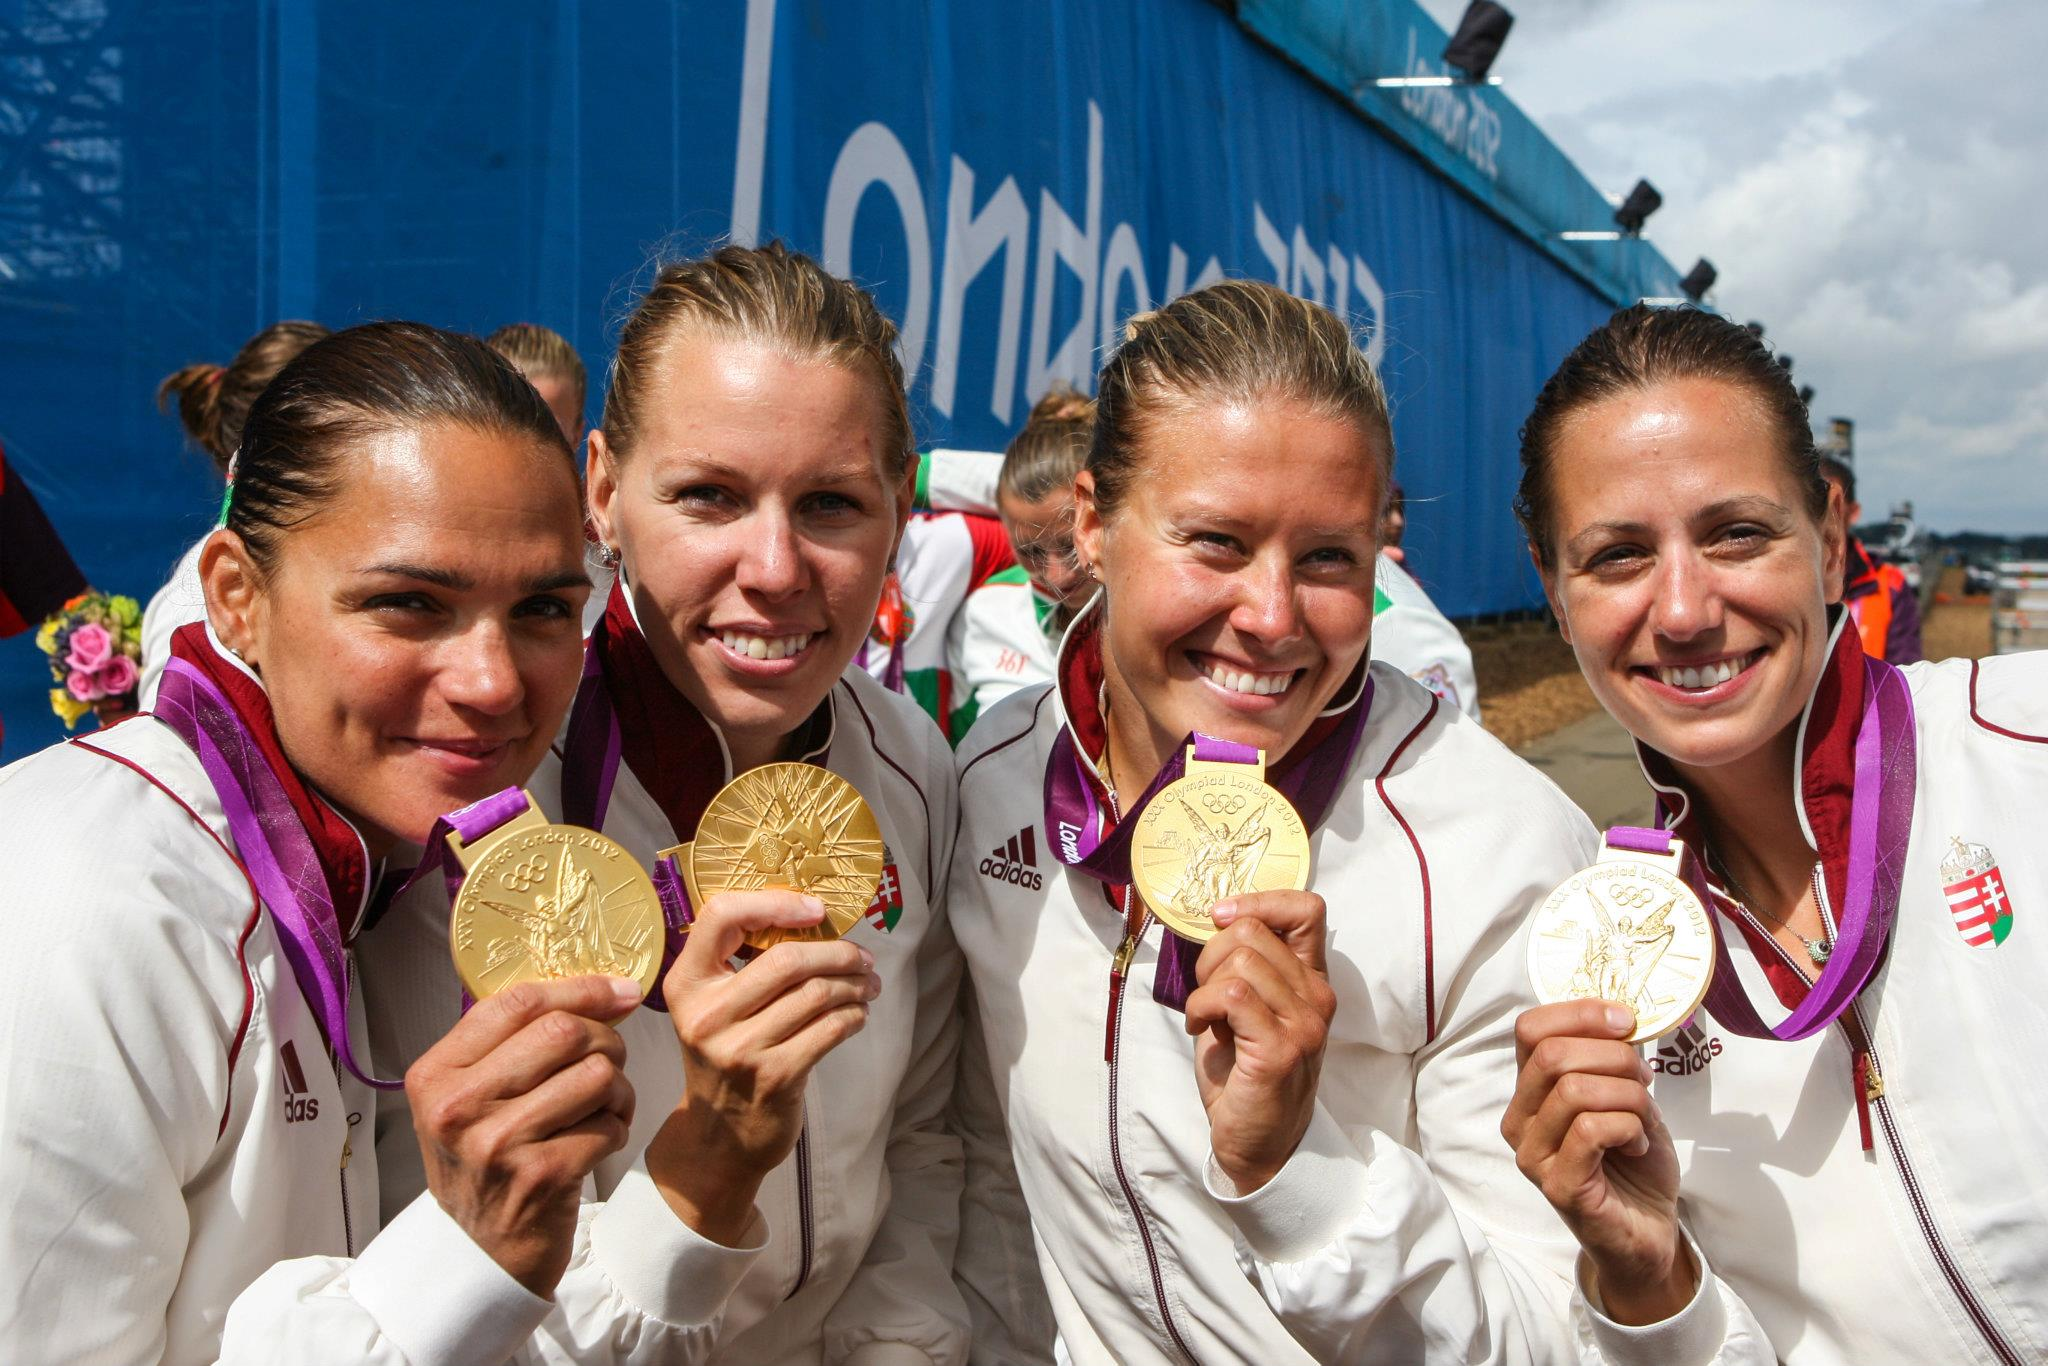 Invited Olympic Gold Medalist to small group counseling session on GOALS & Resilience -